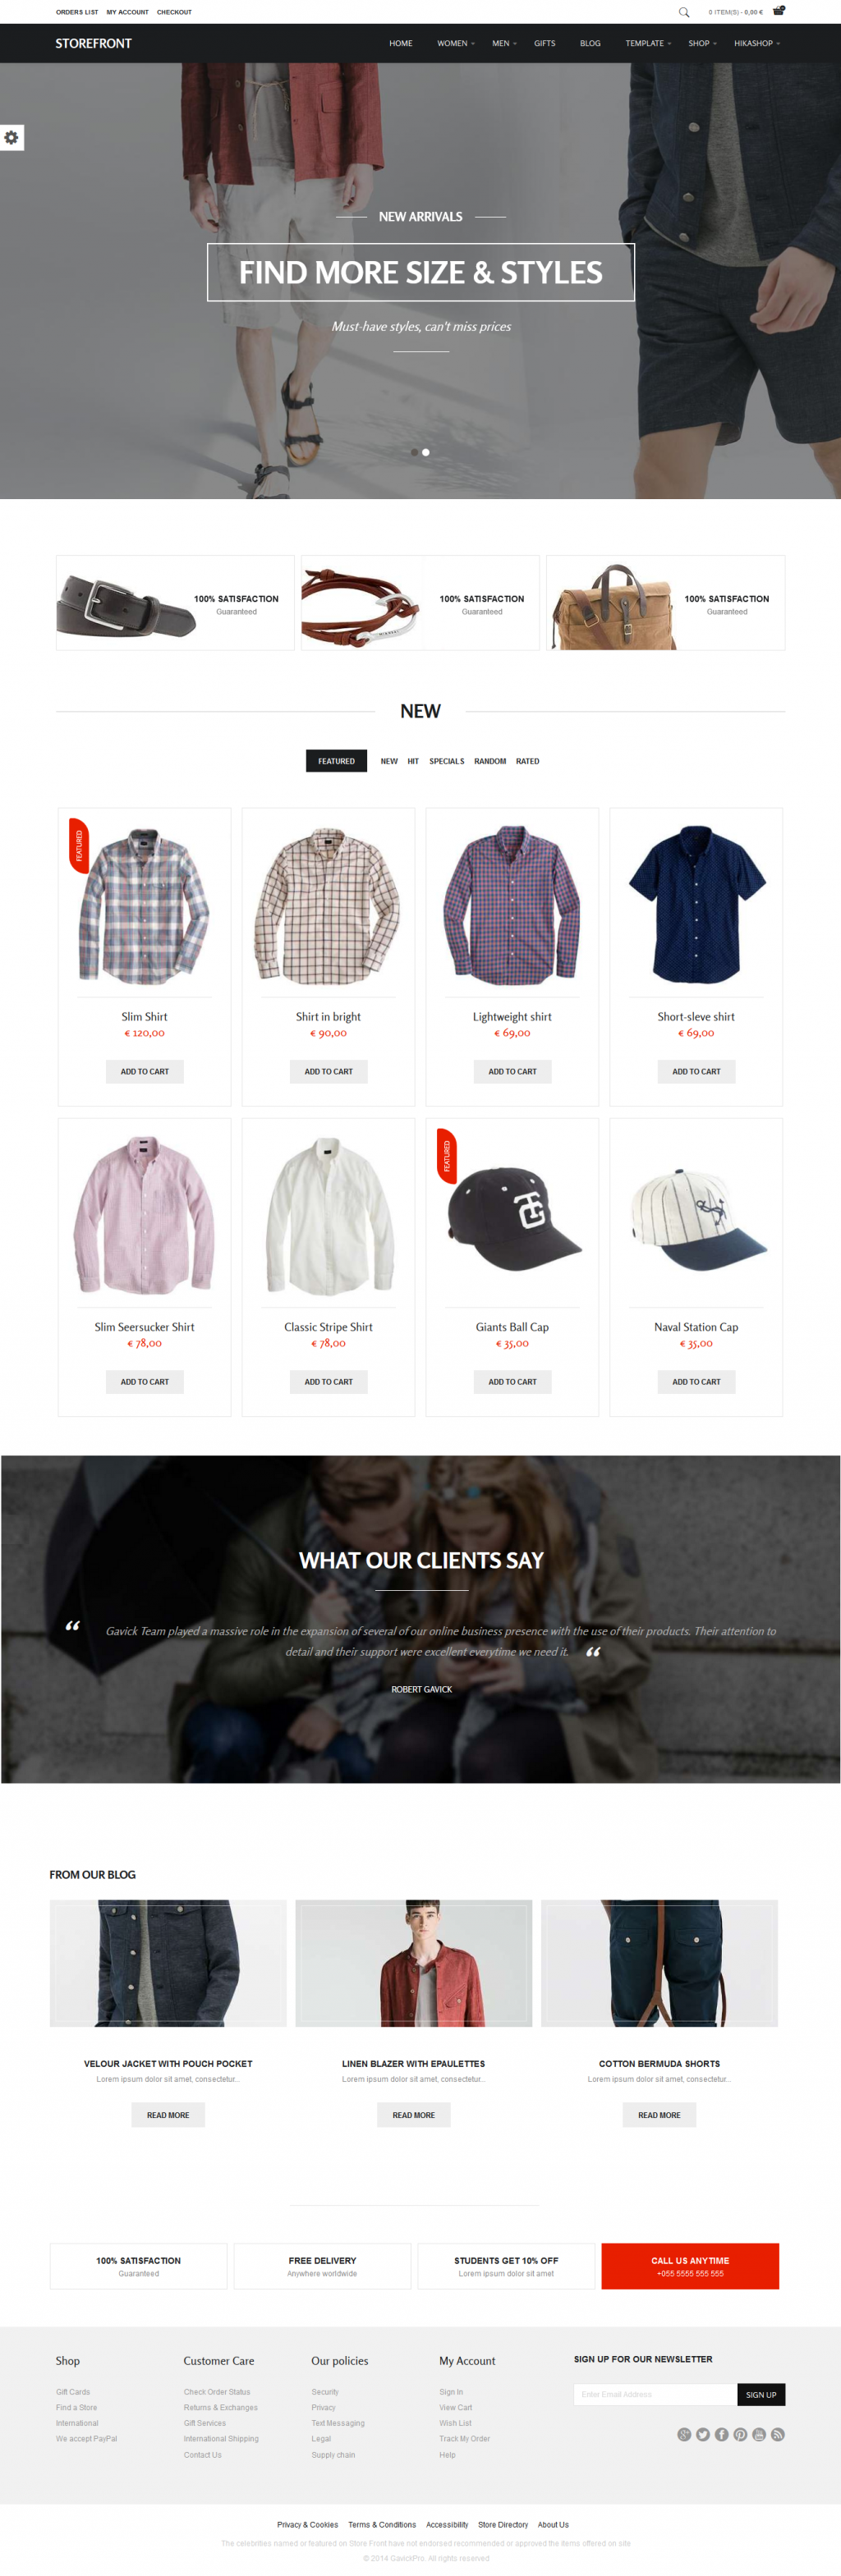 Storefront is a professional eCommerce Joomla Theme.